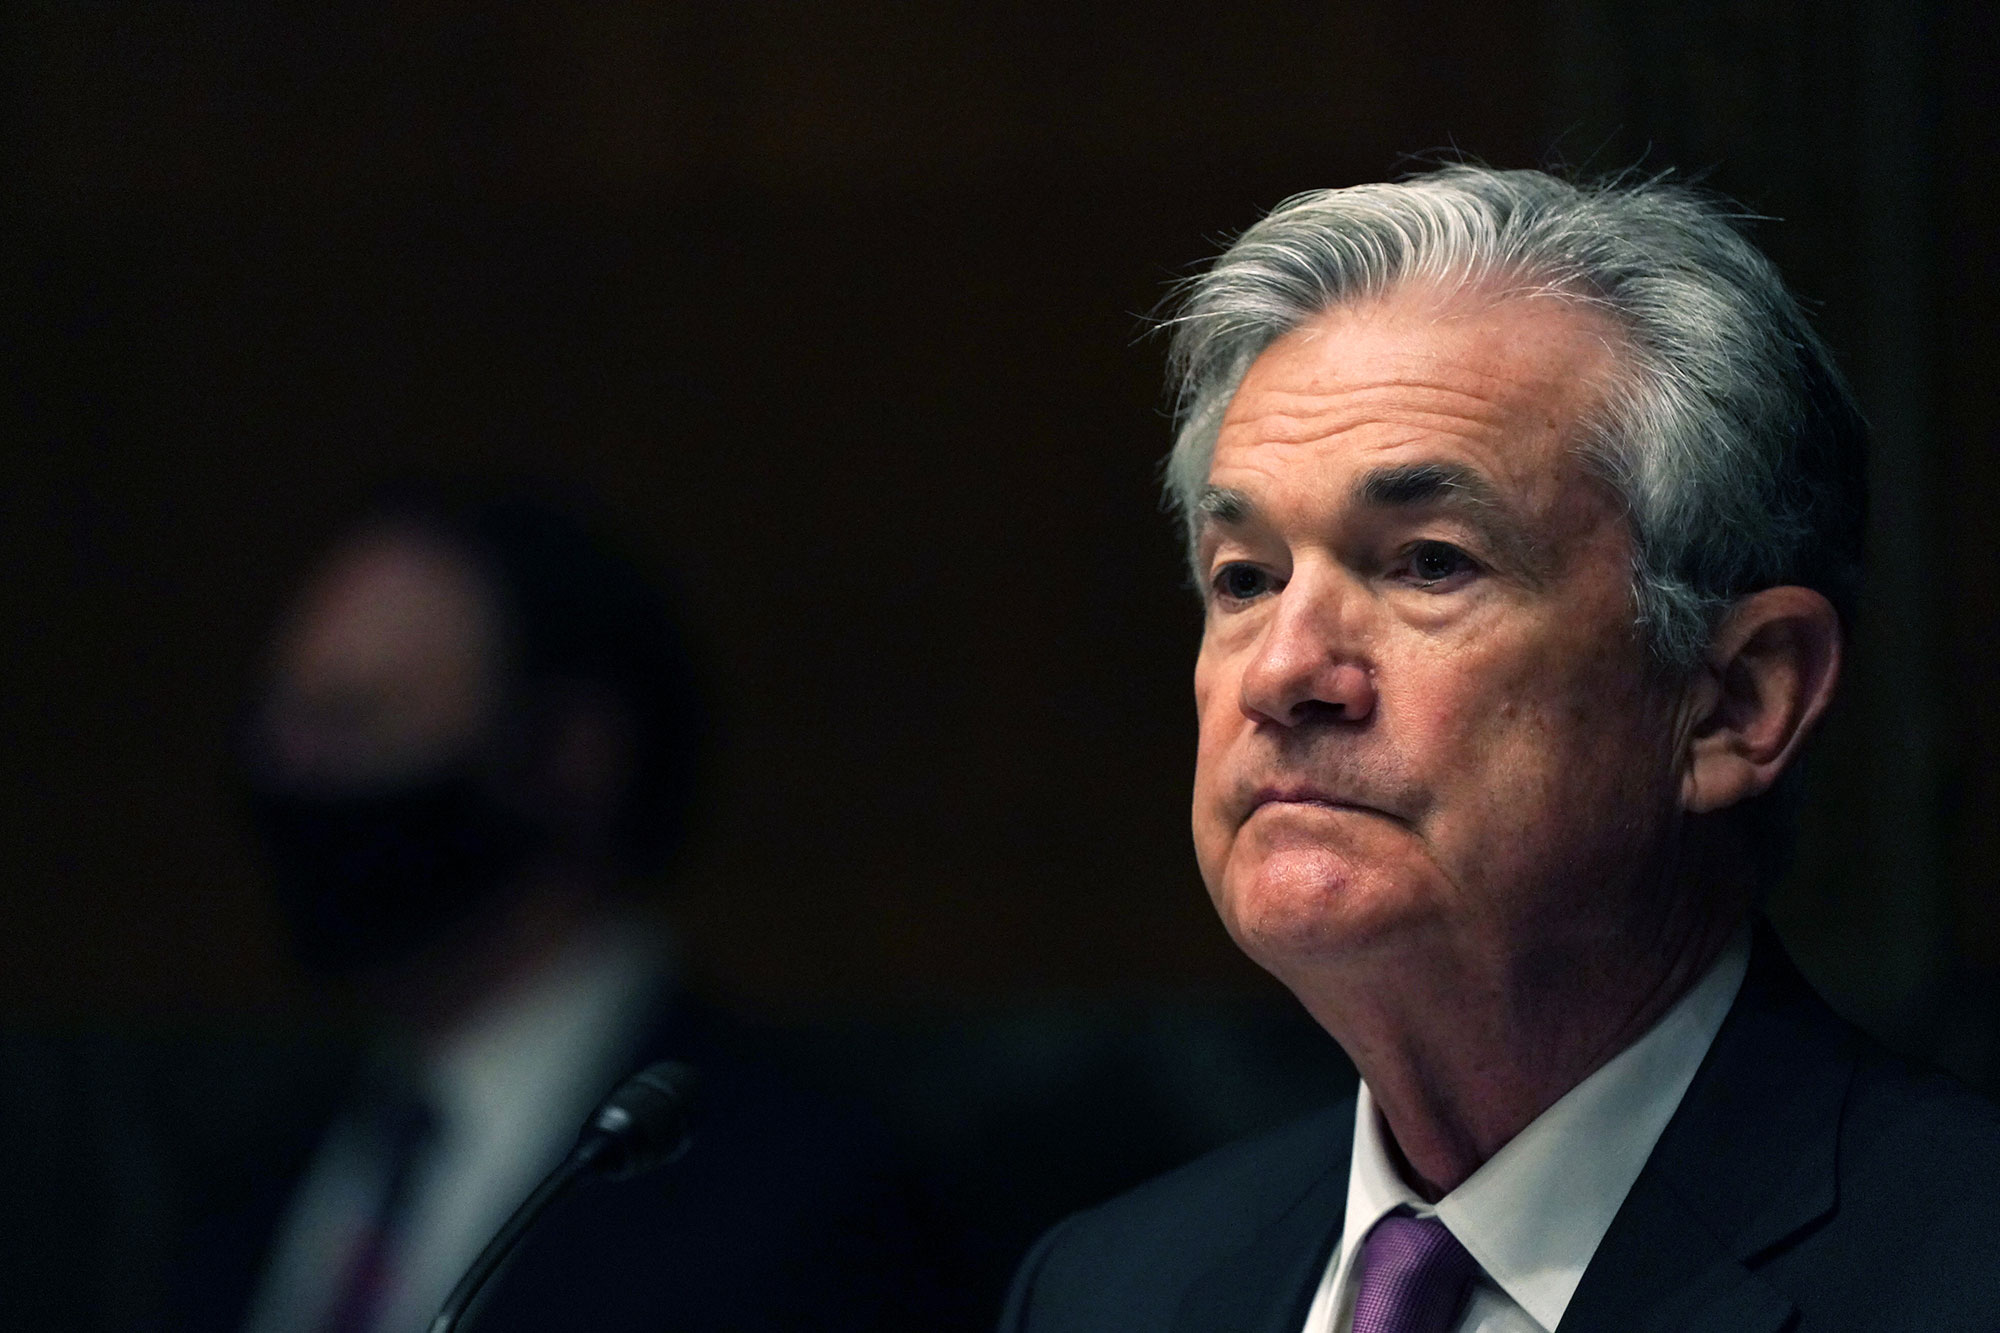 Federal Reserve Chair Jerome Powell testifies during a Senate Banking Committee hearing on September 24 in Washington, DC.